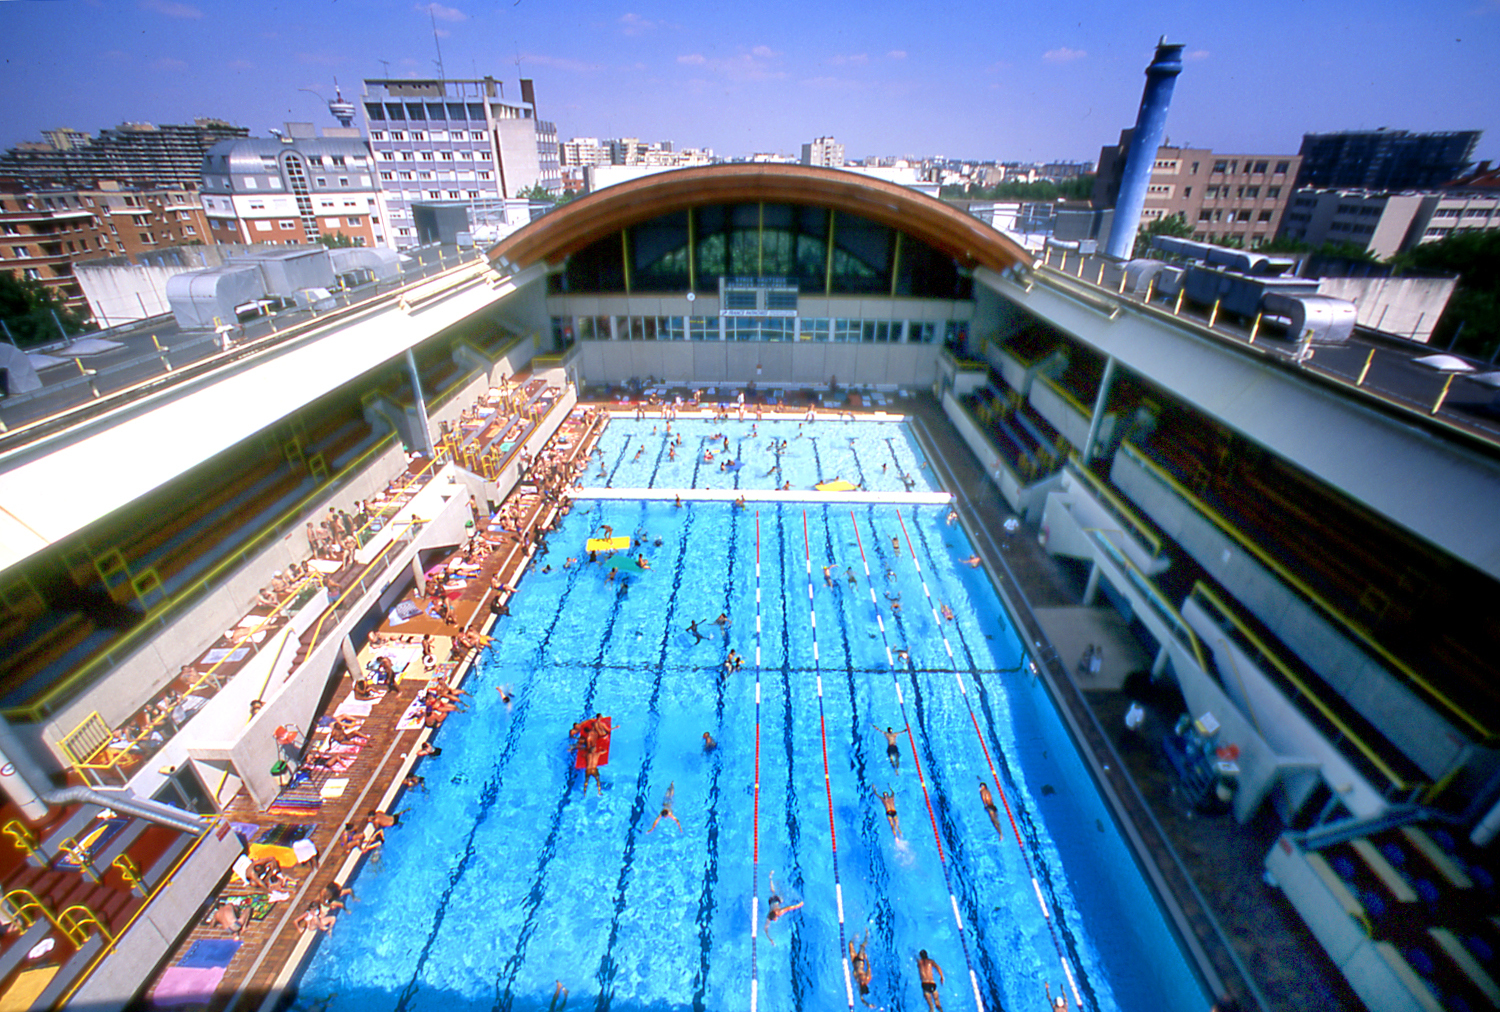 Piscines top 10 des piscines pour nager paris cet t for Piscine bernard lafay